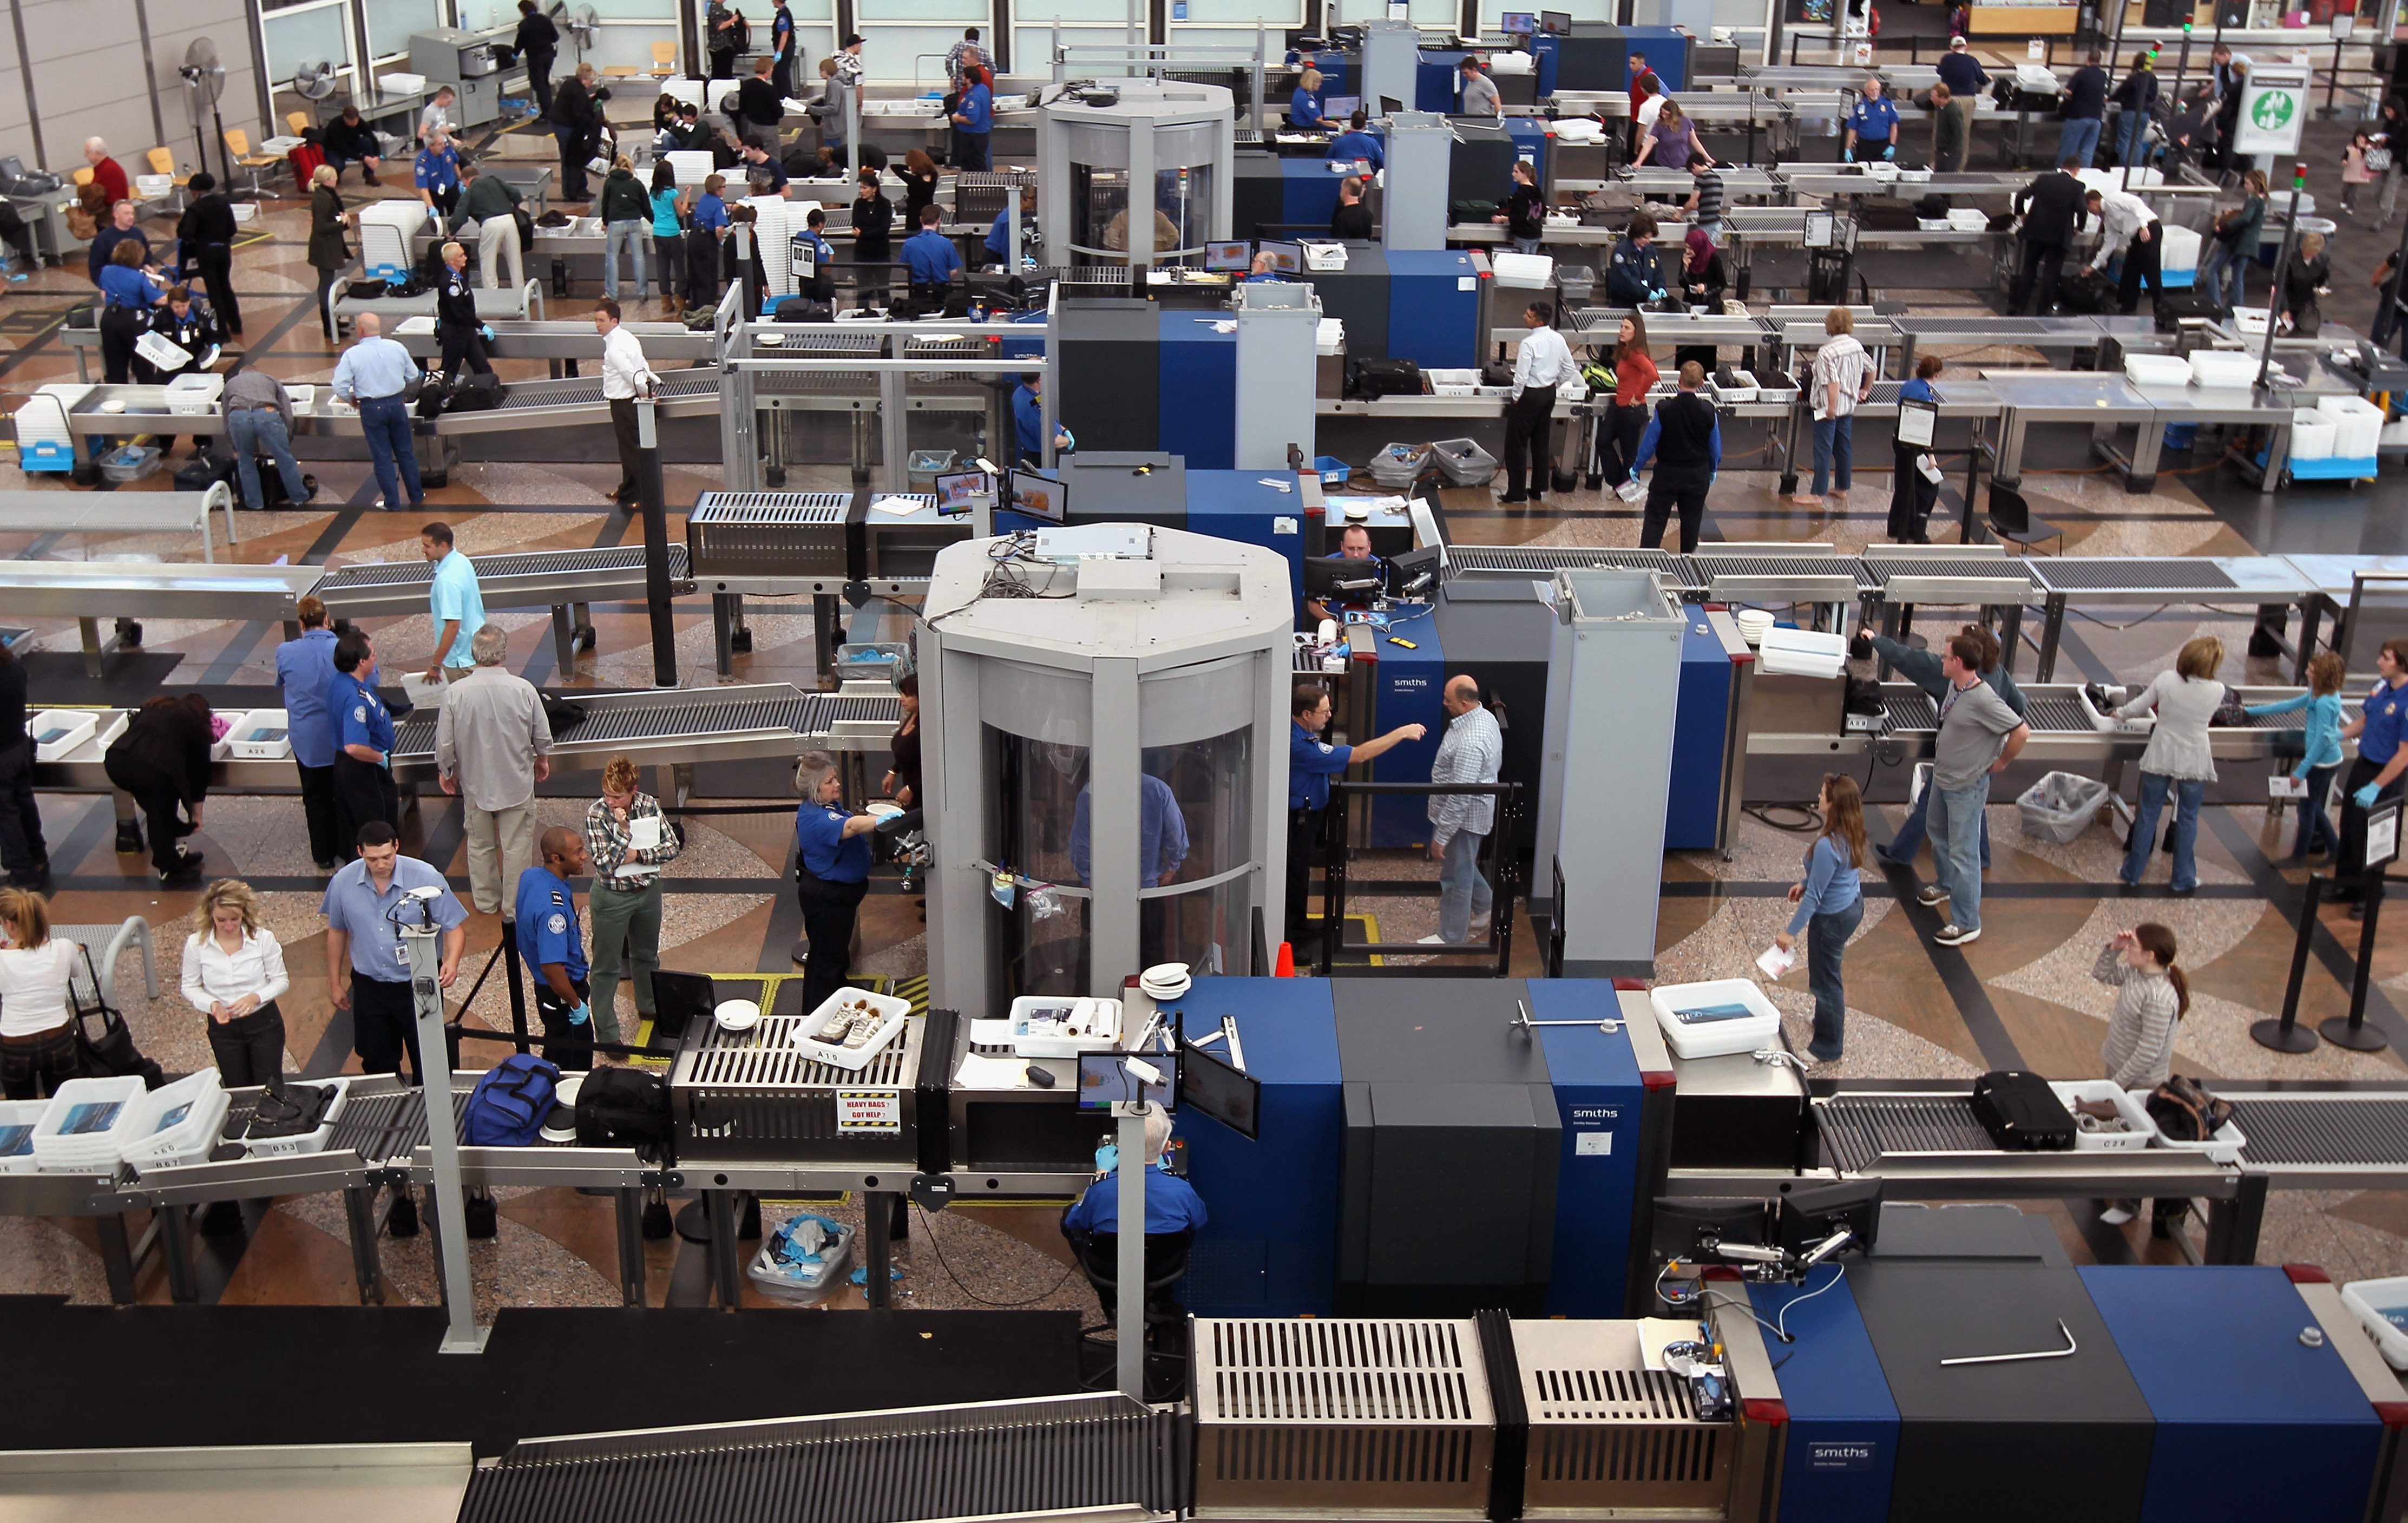 Government report TSA employee misconduct up in 3 years